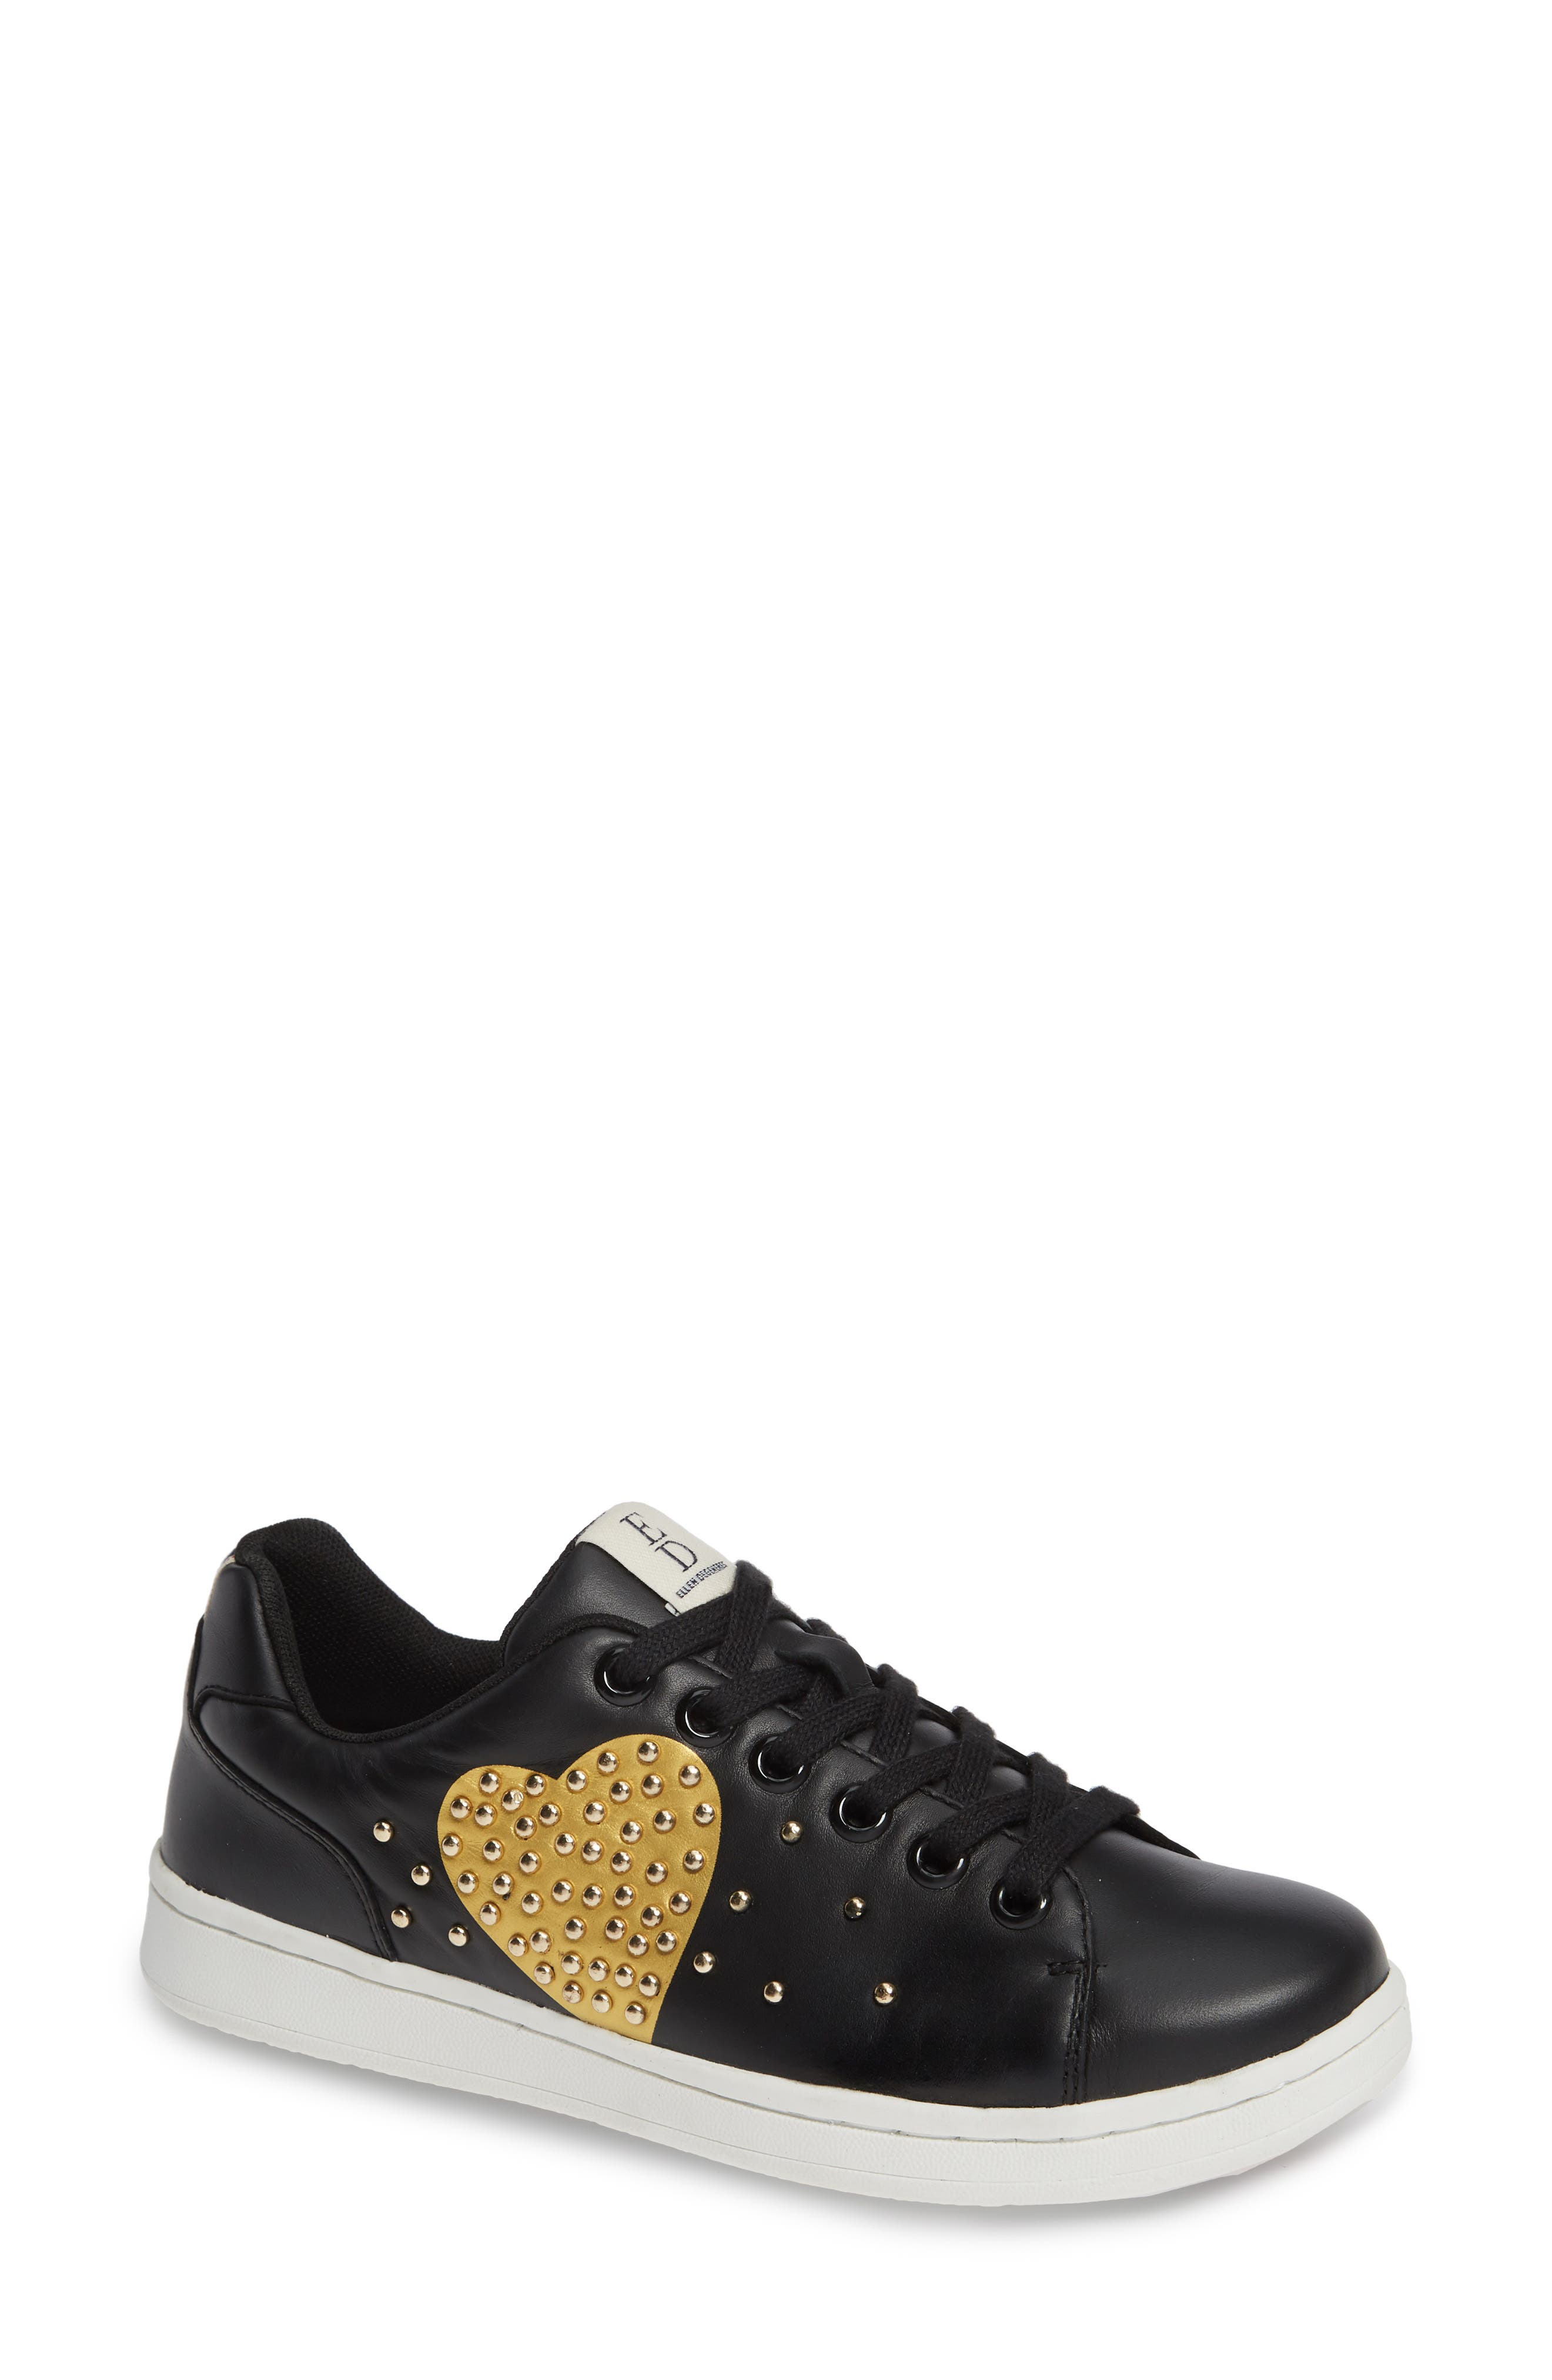 Chamour Sneaker,                             Main thumbnail 1, color,                             BLACK/ GOLD LEATHER